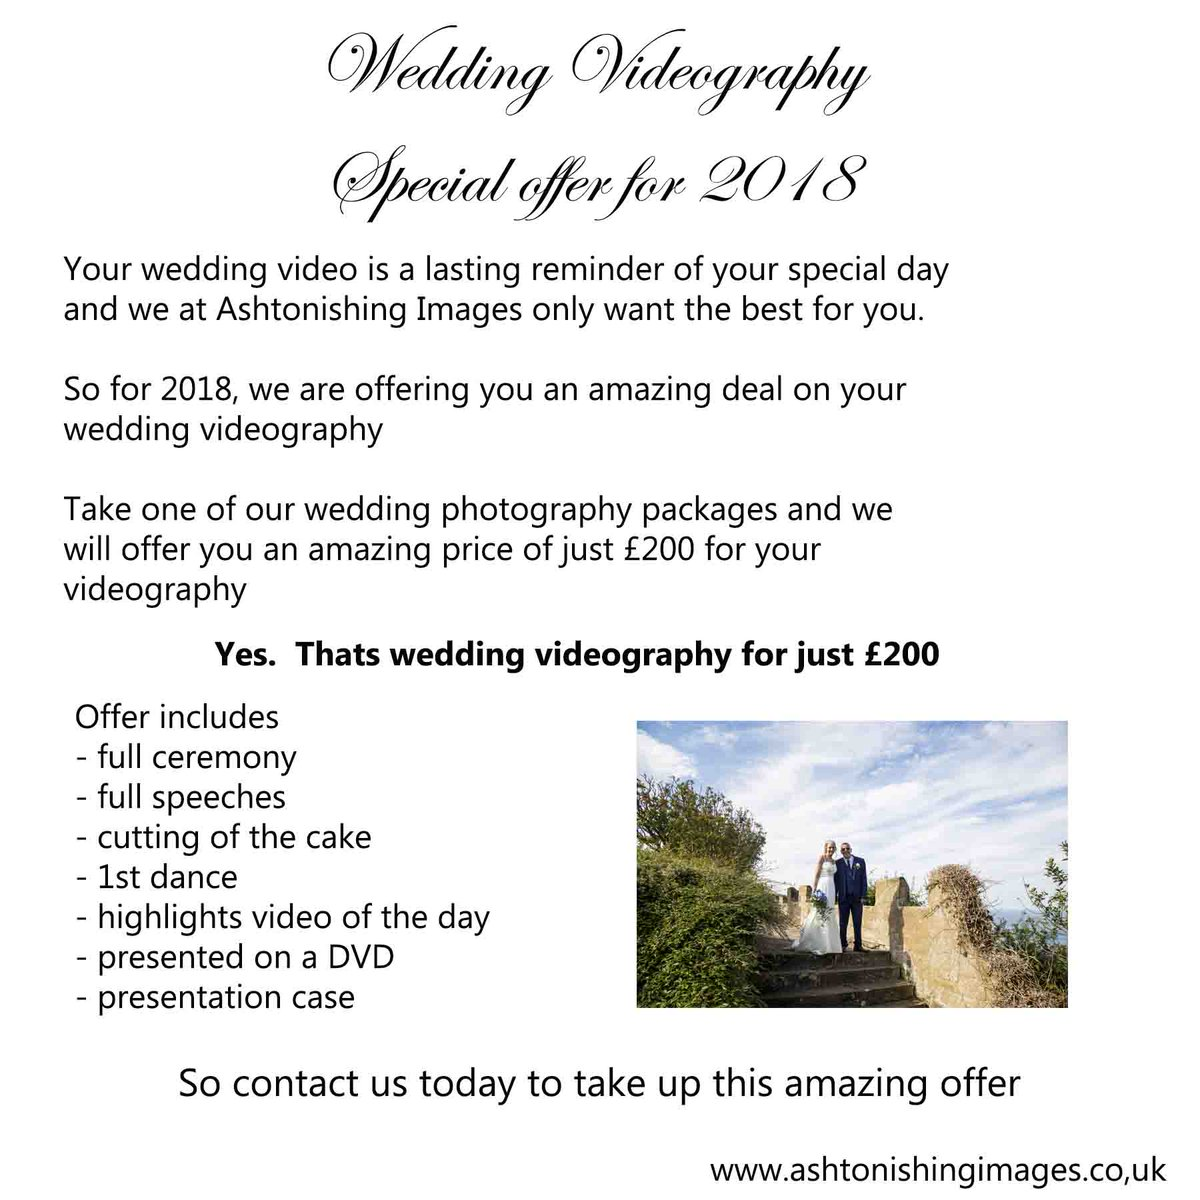 Ashtonishing Images On Twitter Wedding Photography And Videography Special Offer For 2018 Book Any Of Our Packages Add